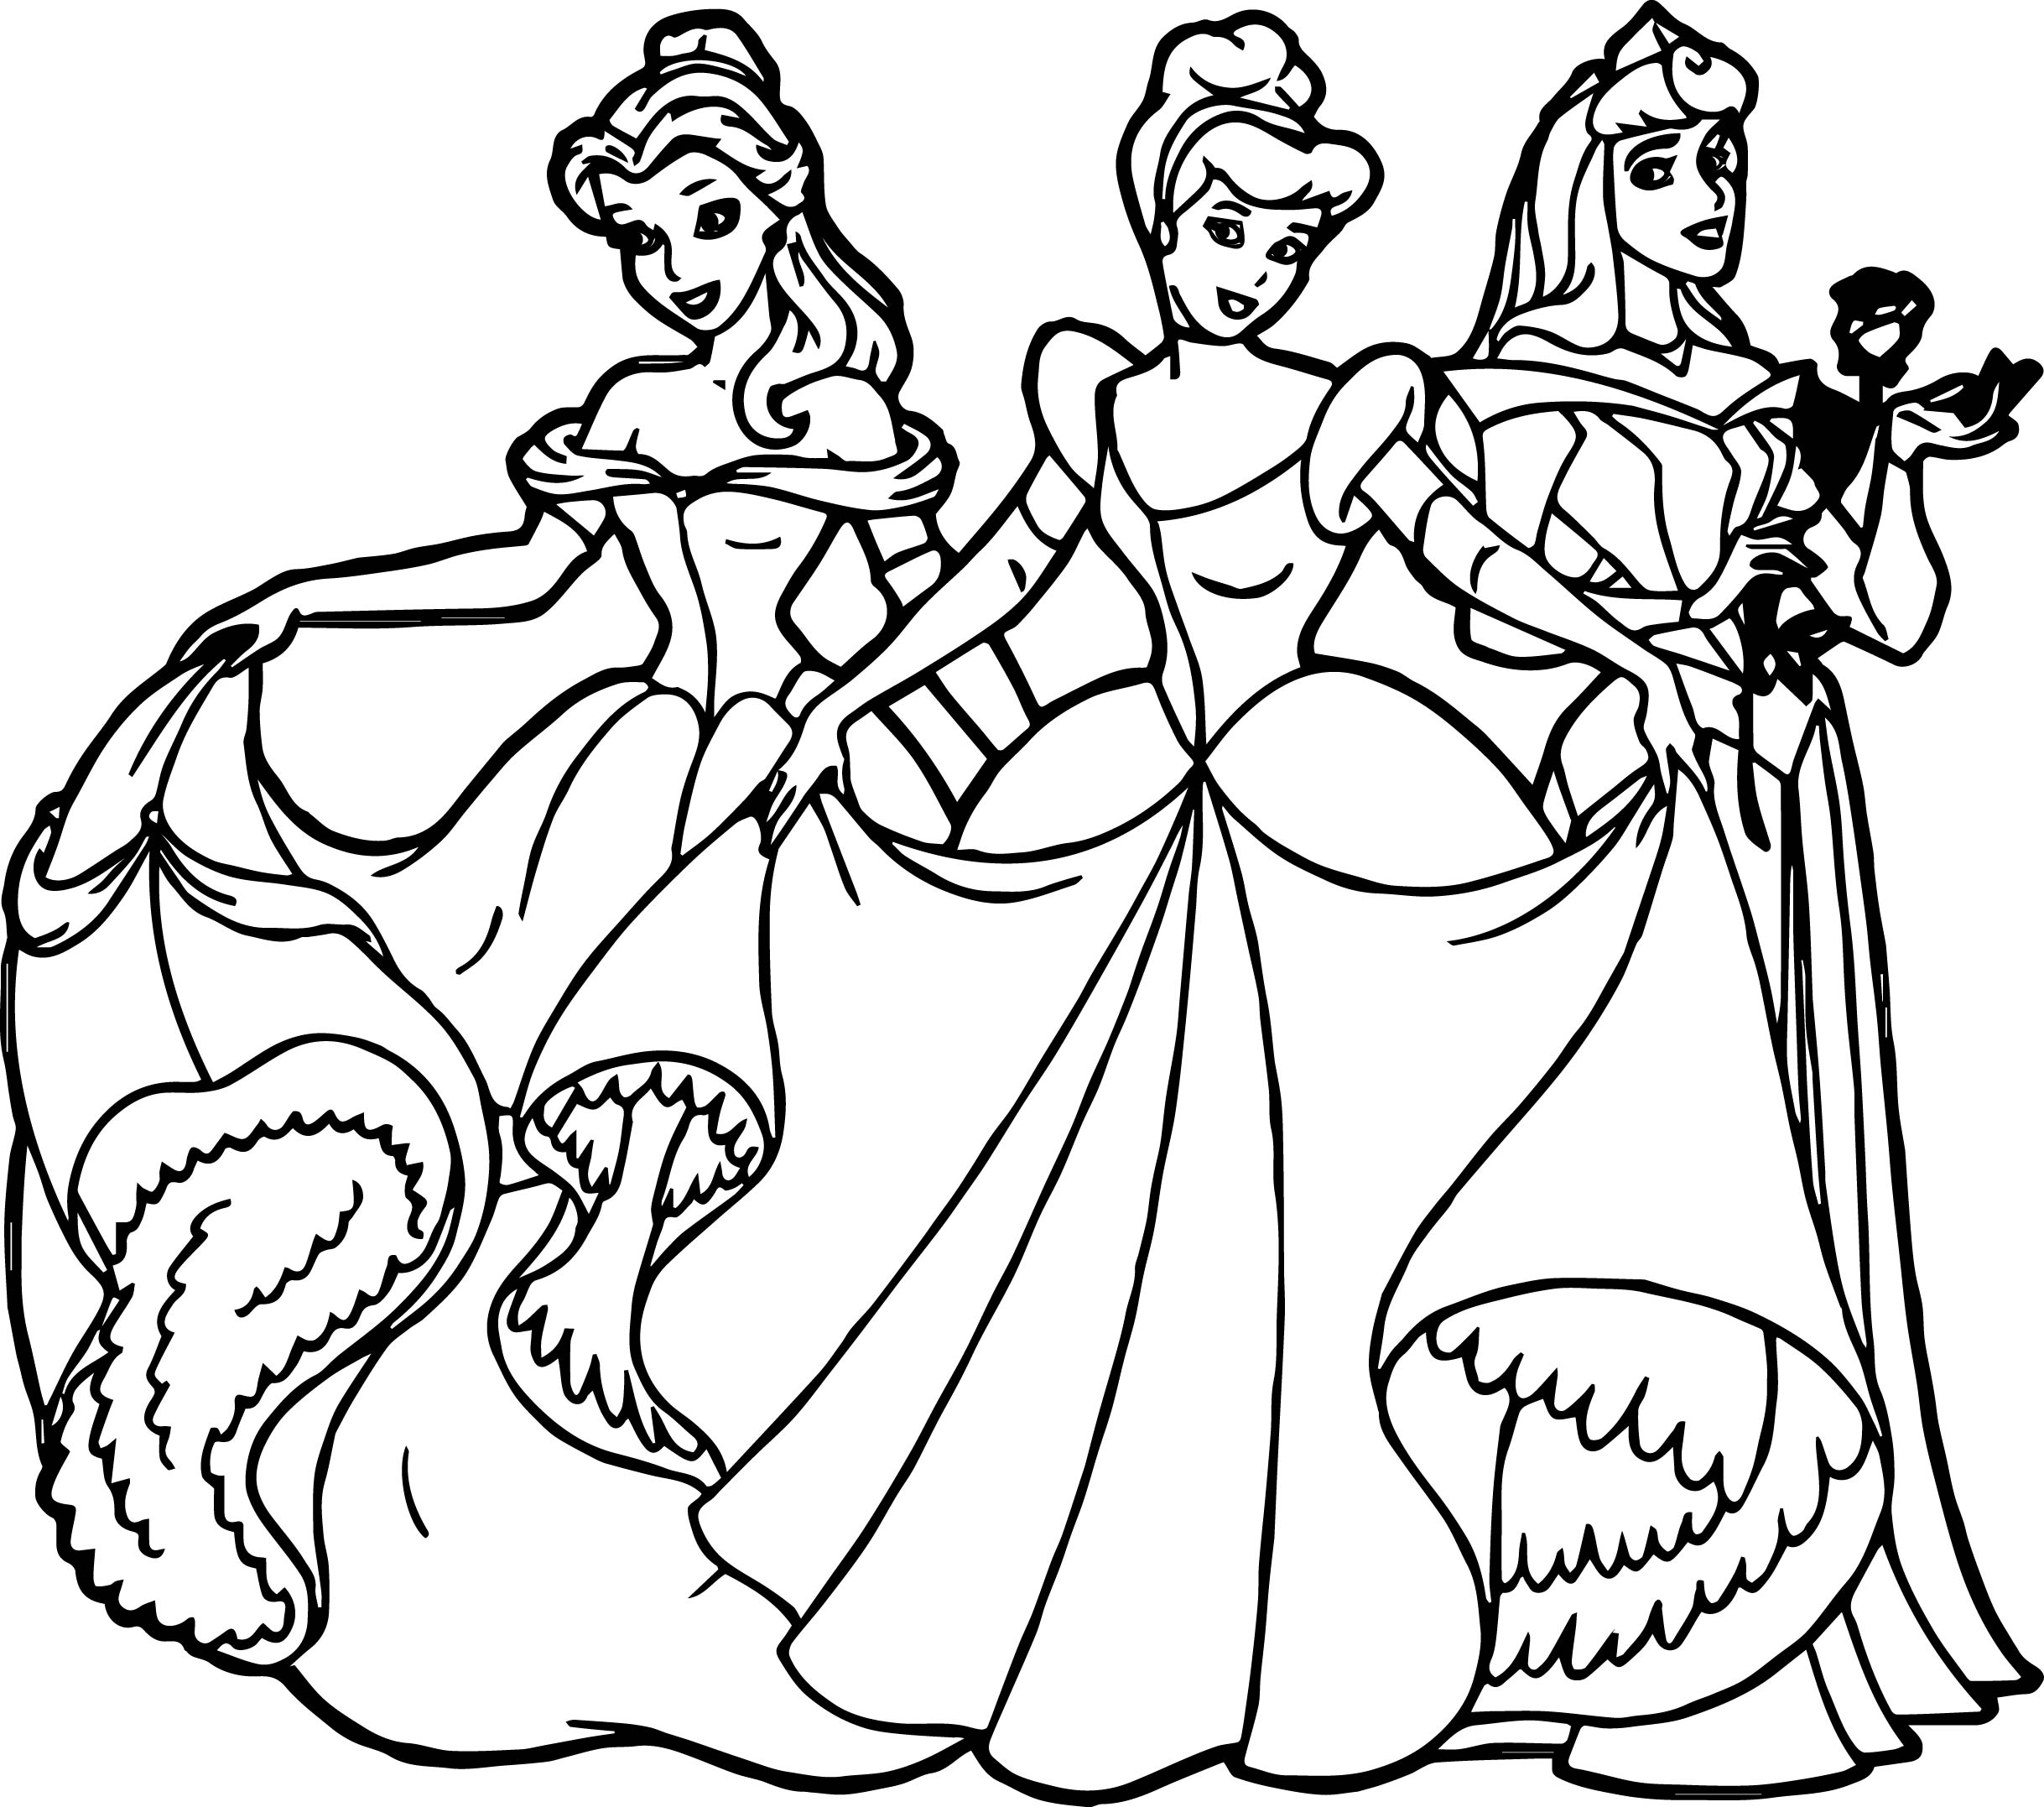 all coloring sheets all about me coloring page twisty noodle coloring sheets all